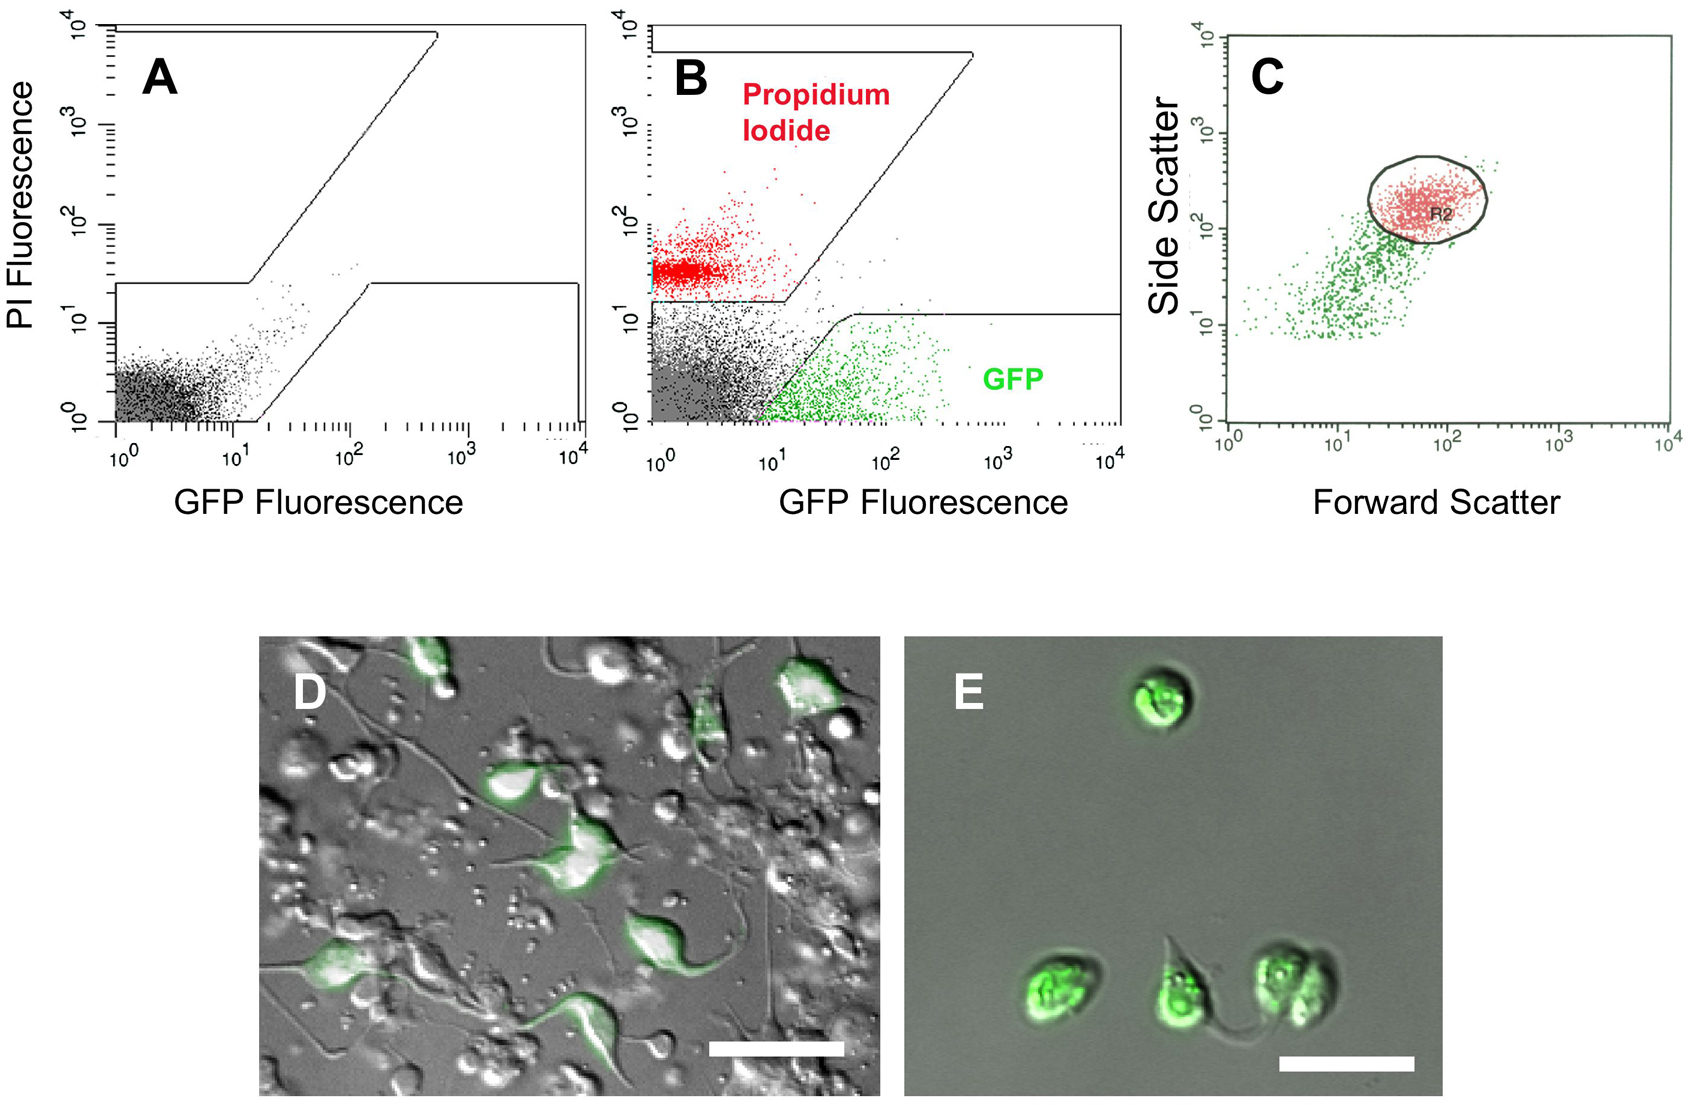 Methods In Cell Biology Molecular Expressions Bacteria Structure Isolation Of Embryonic Muscle Cells By Facs A Fluorescence Intensity Profile Wildtype Non Gfp Boxed Areas Exclude Autofluorescent